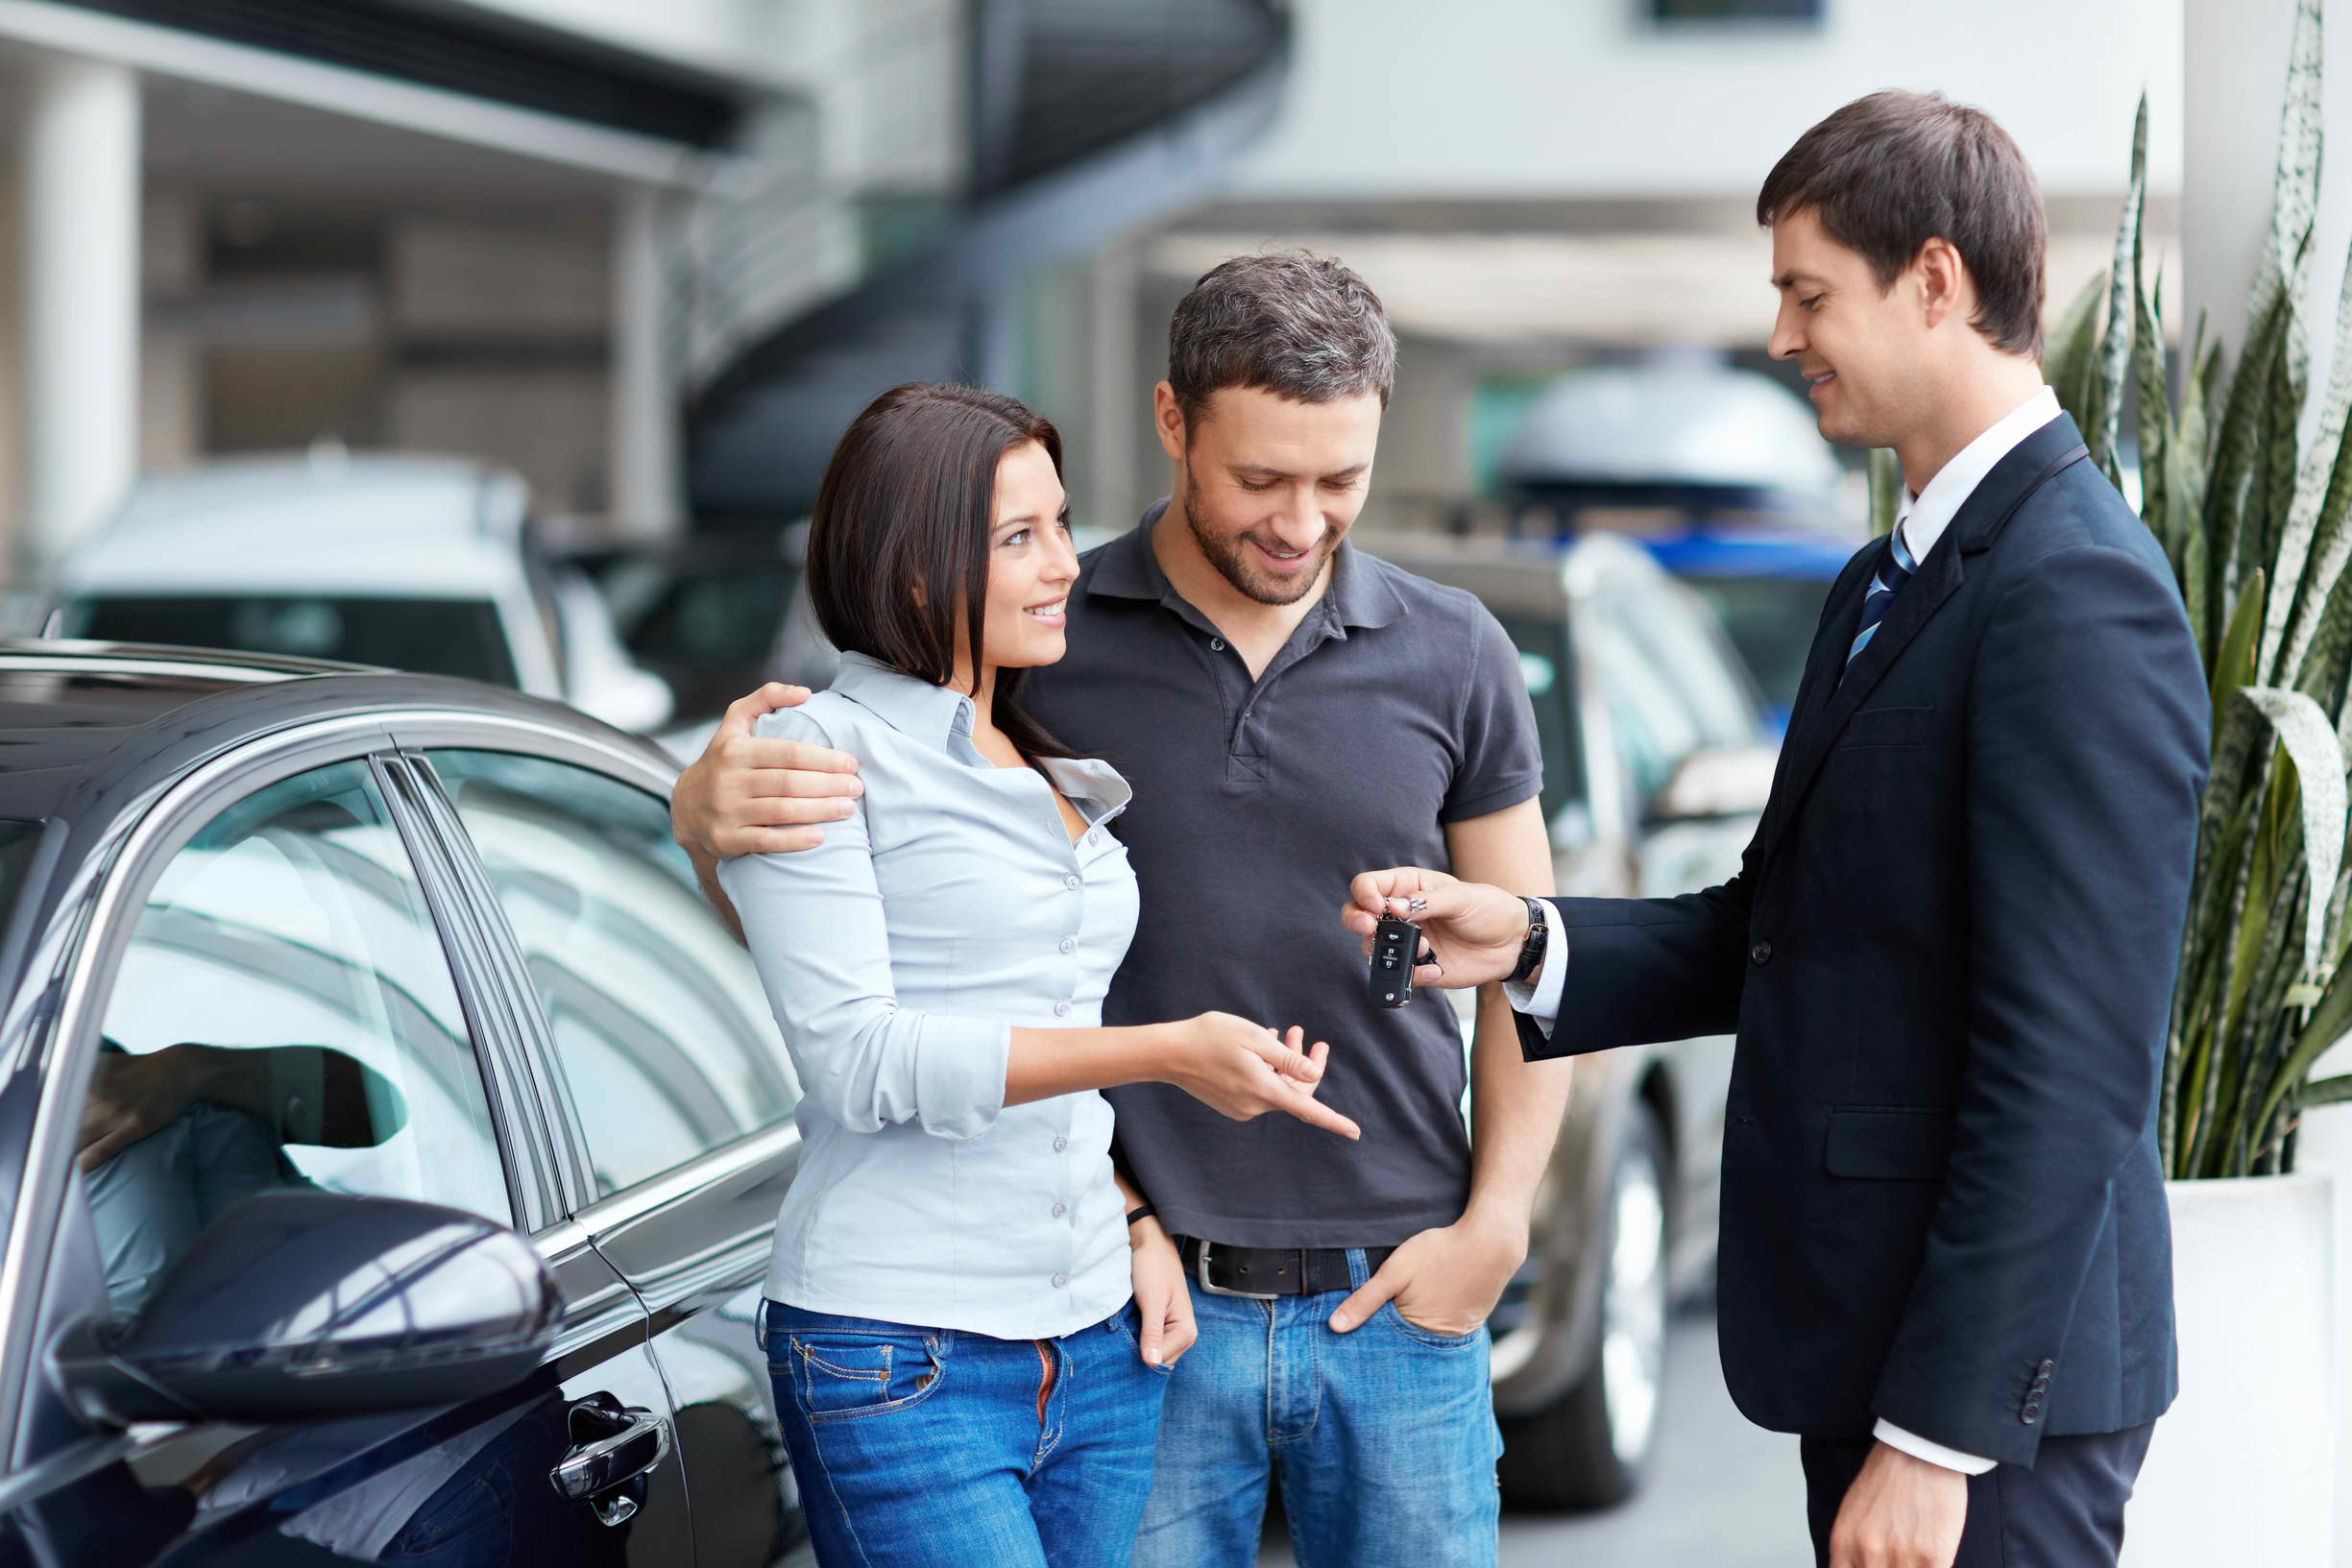 Private seller or car dealer?